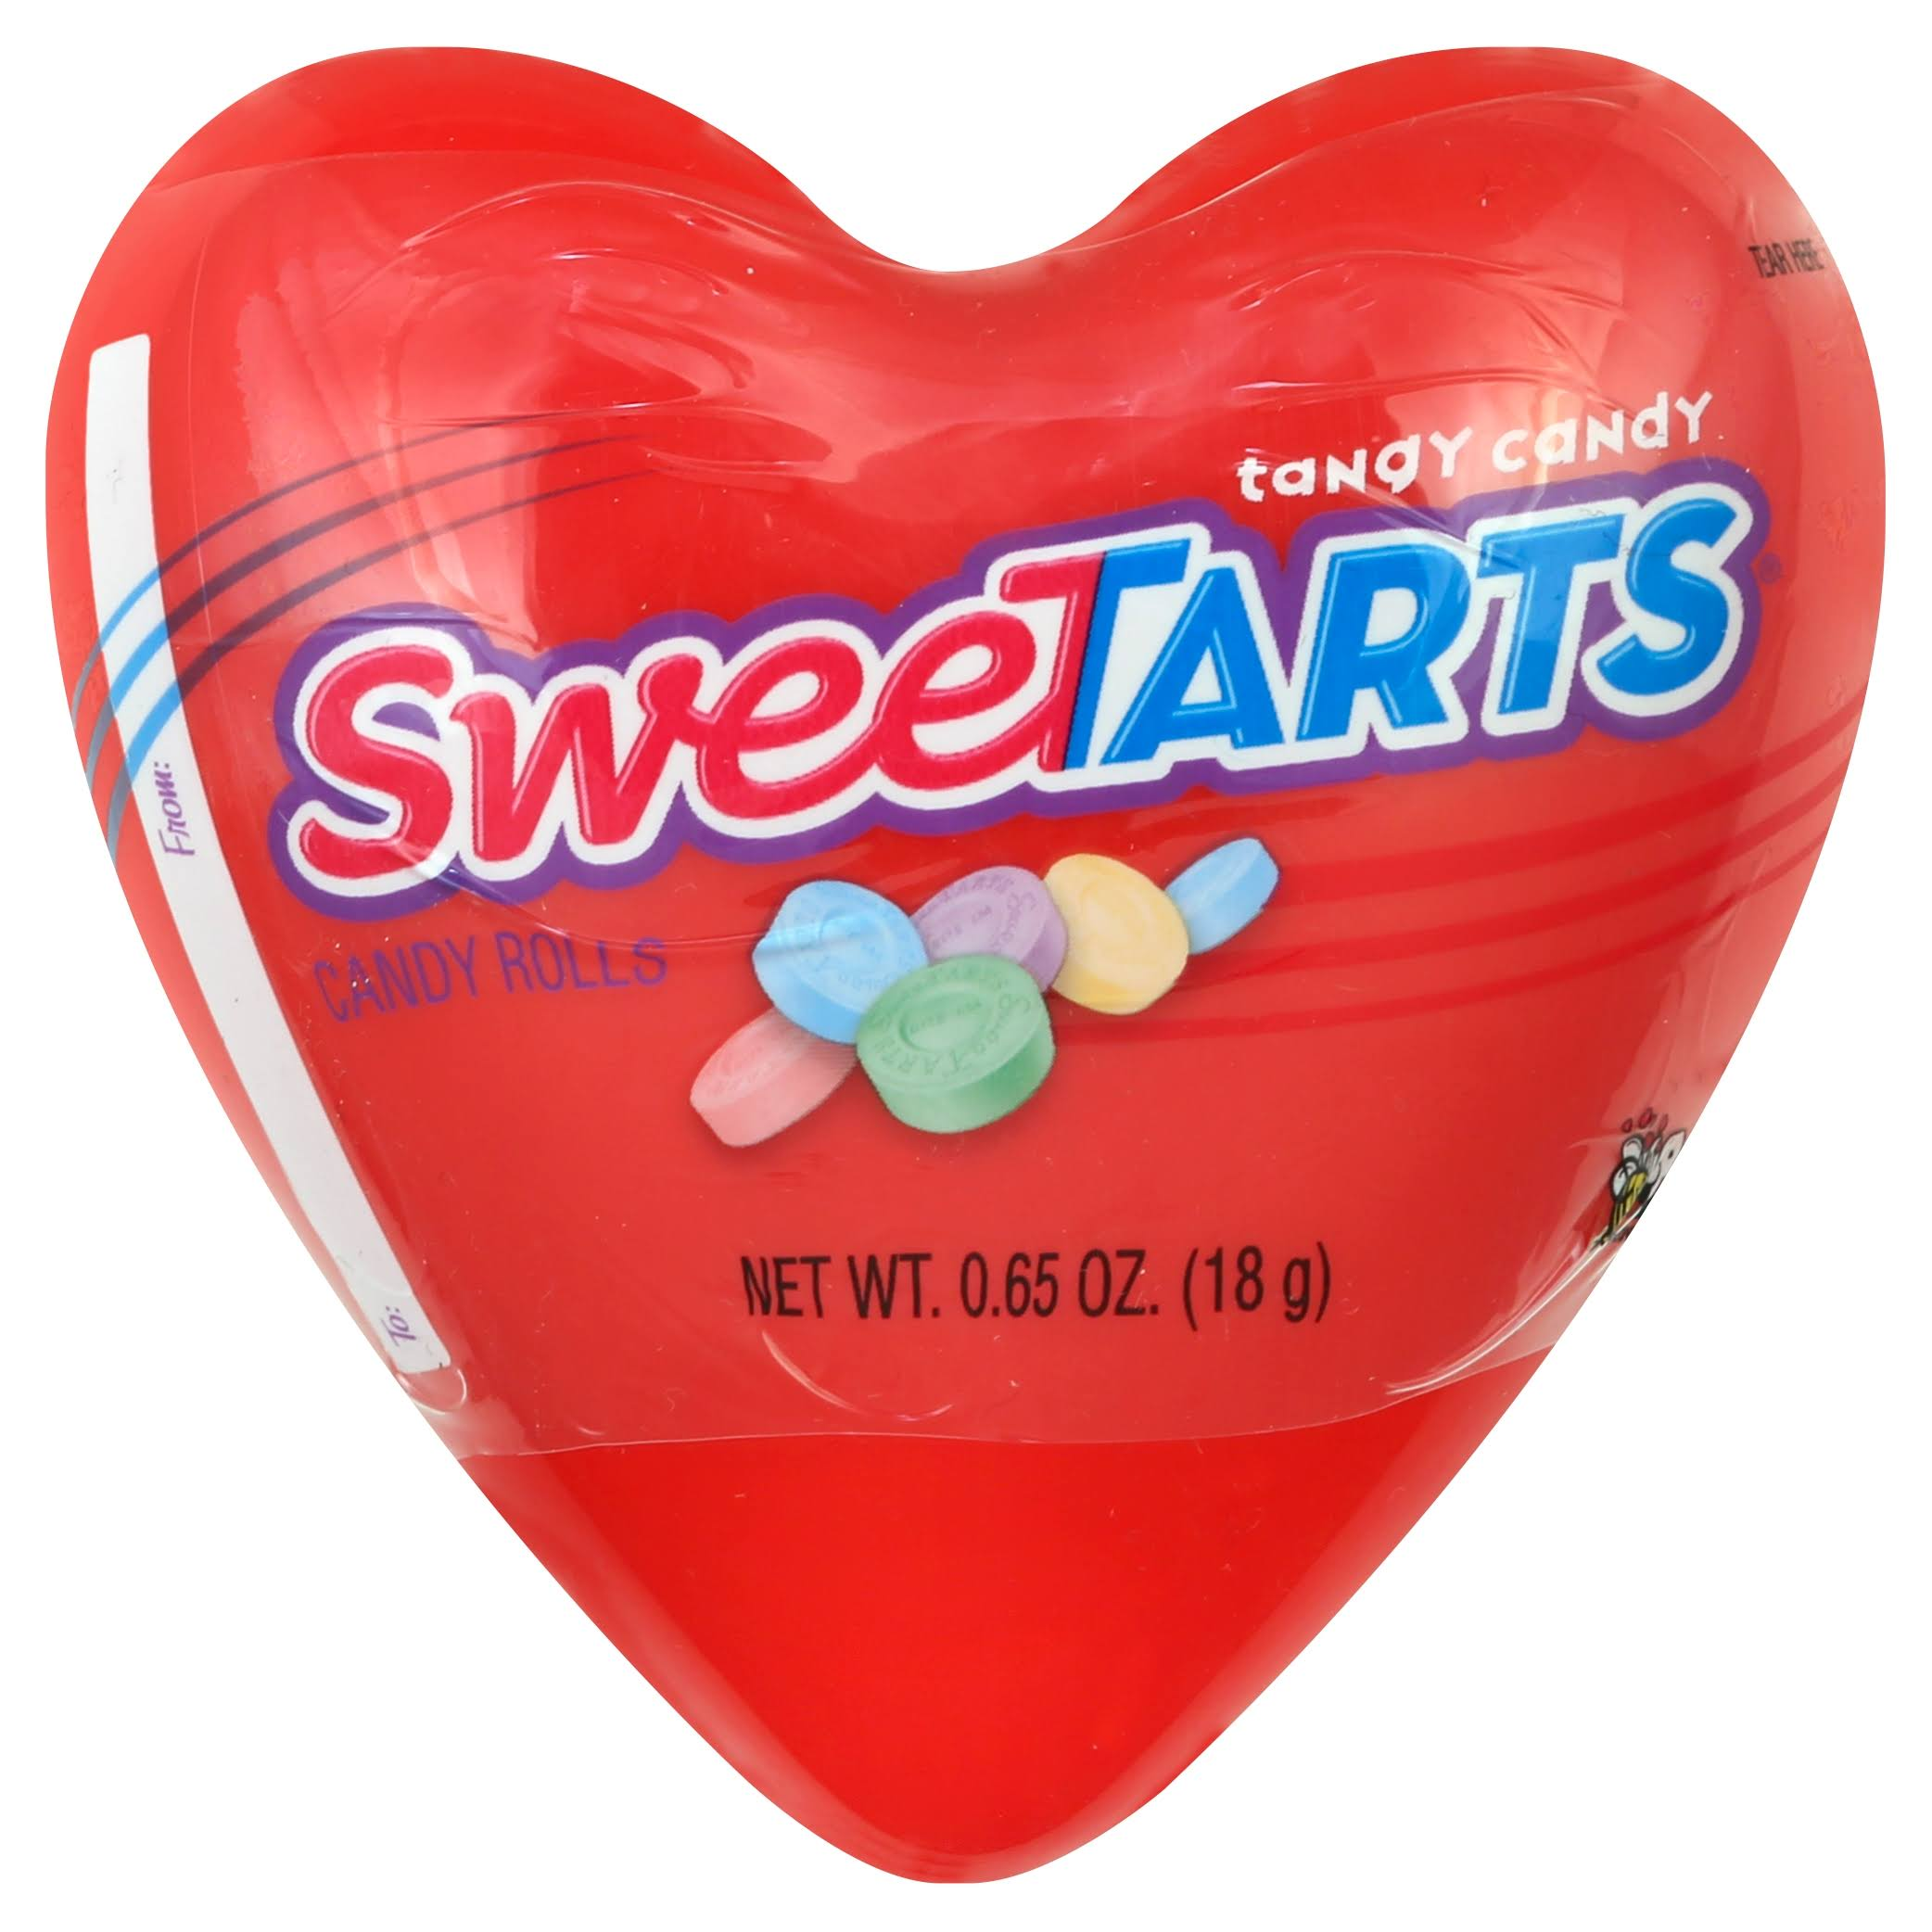 Sweetarts Candy Rolls, Tangy - 0.65 oz